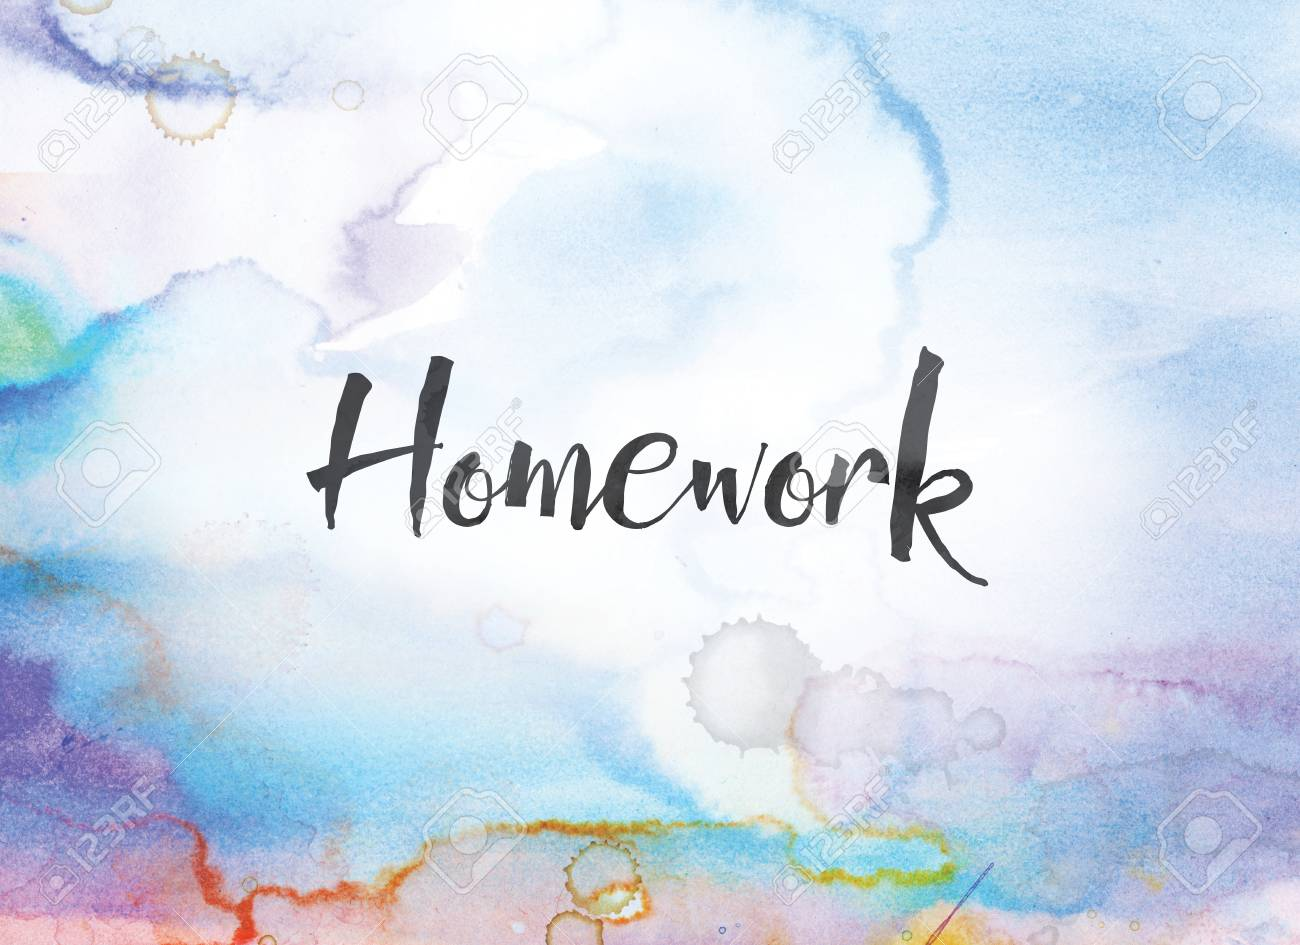 The Word Homework Concept And Theme Written In Black Ink On A 1300x945